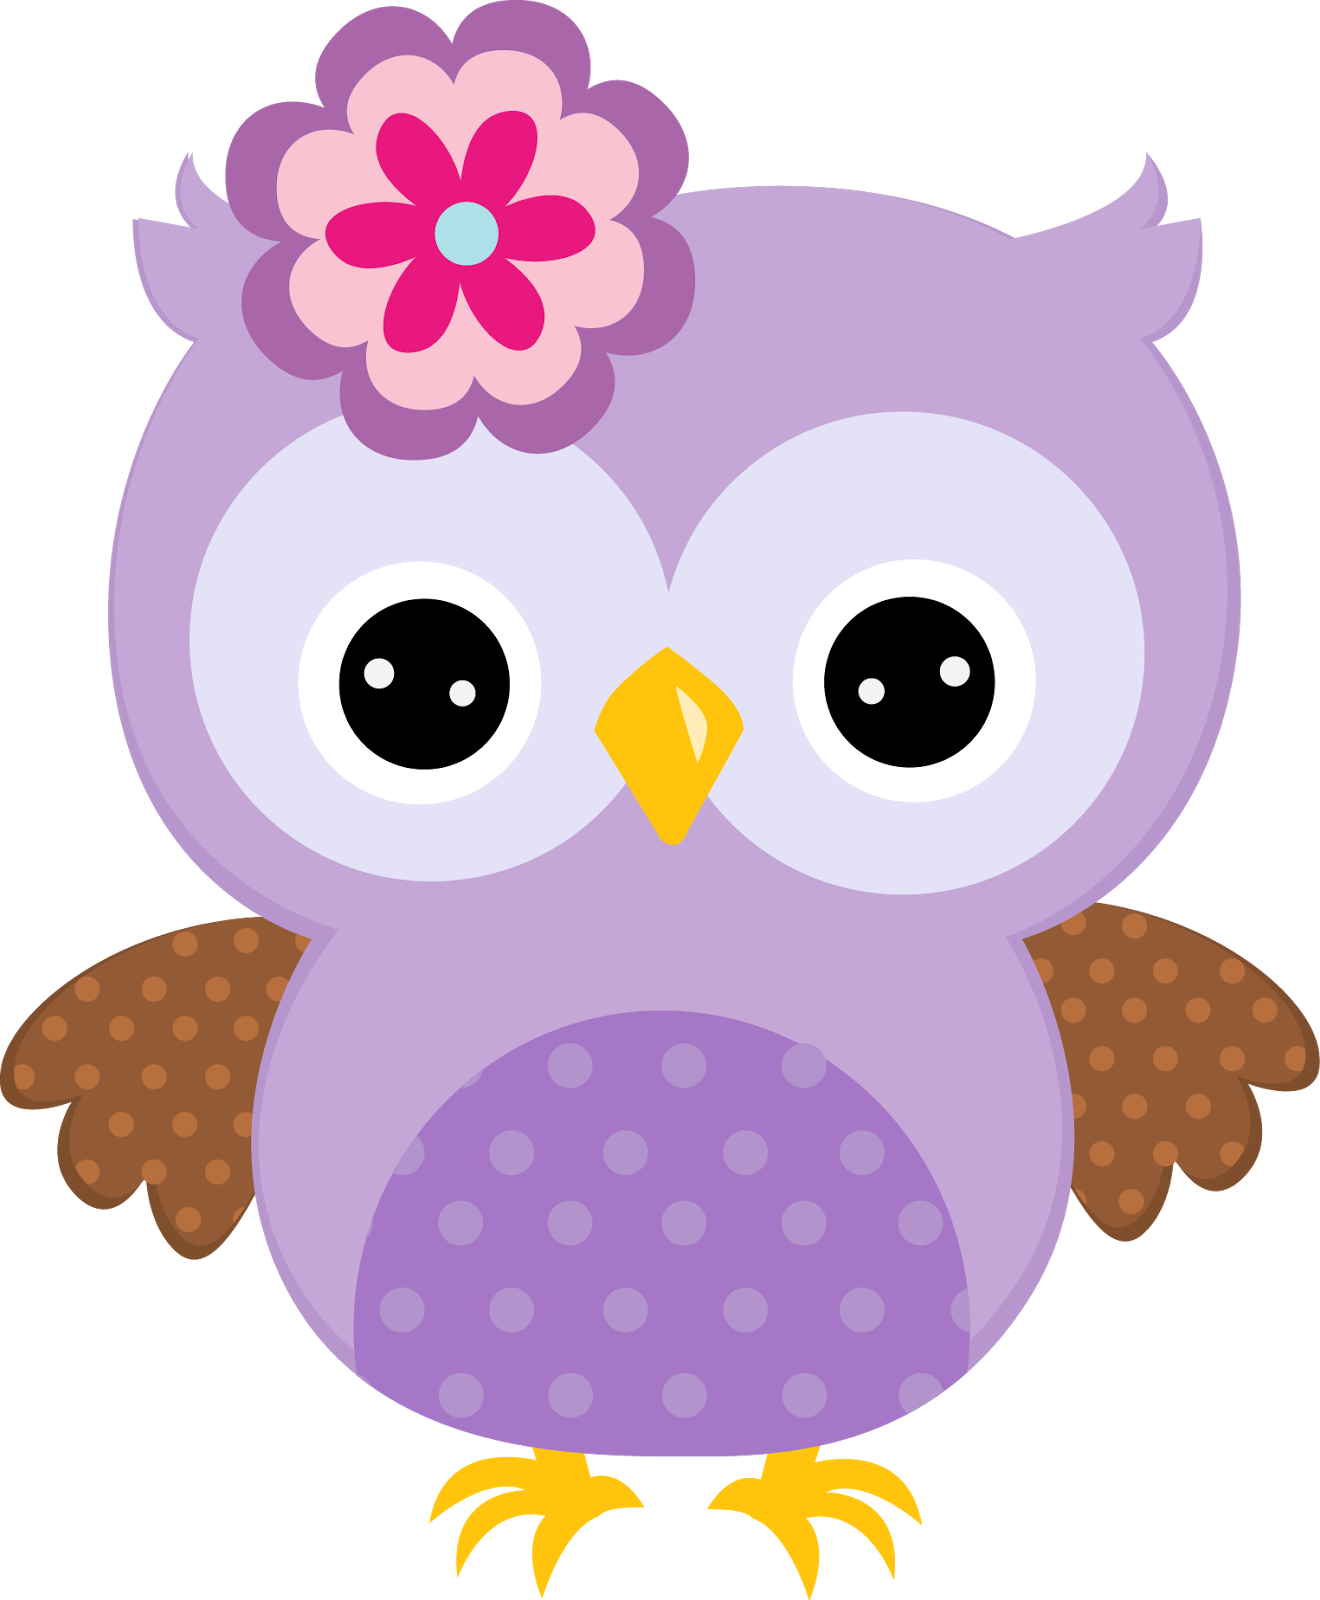 Clipart of owl with apple clip free download ibaR96AA1xnodg.png (1320×1600) | kinder | Pinterest | Planners ... clip free download